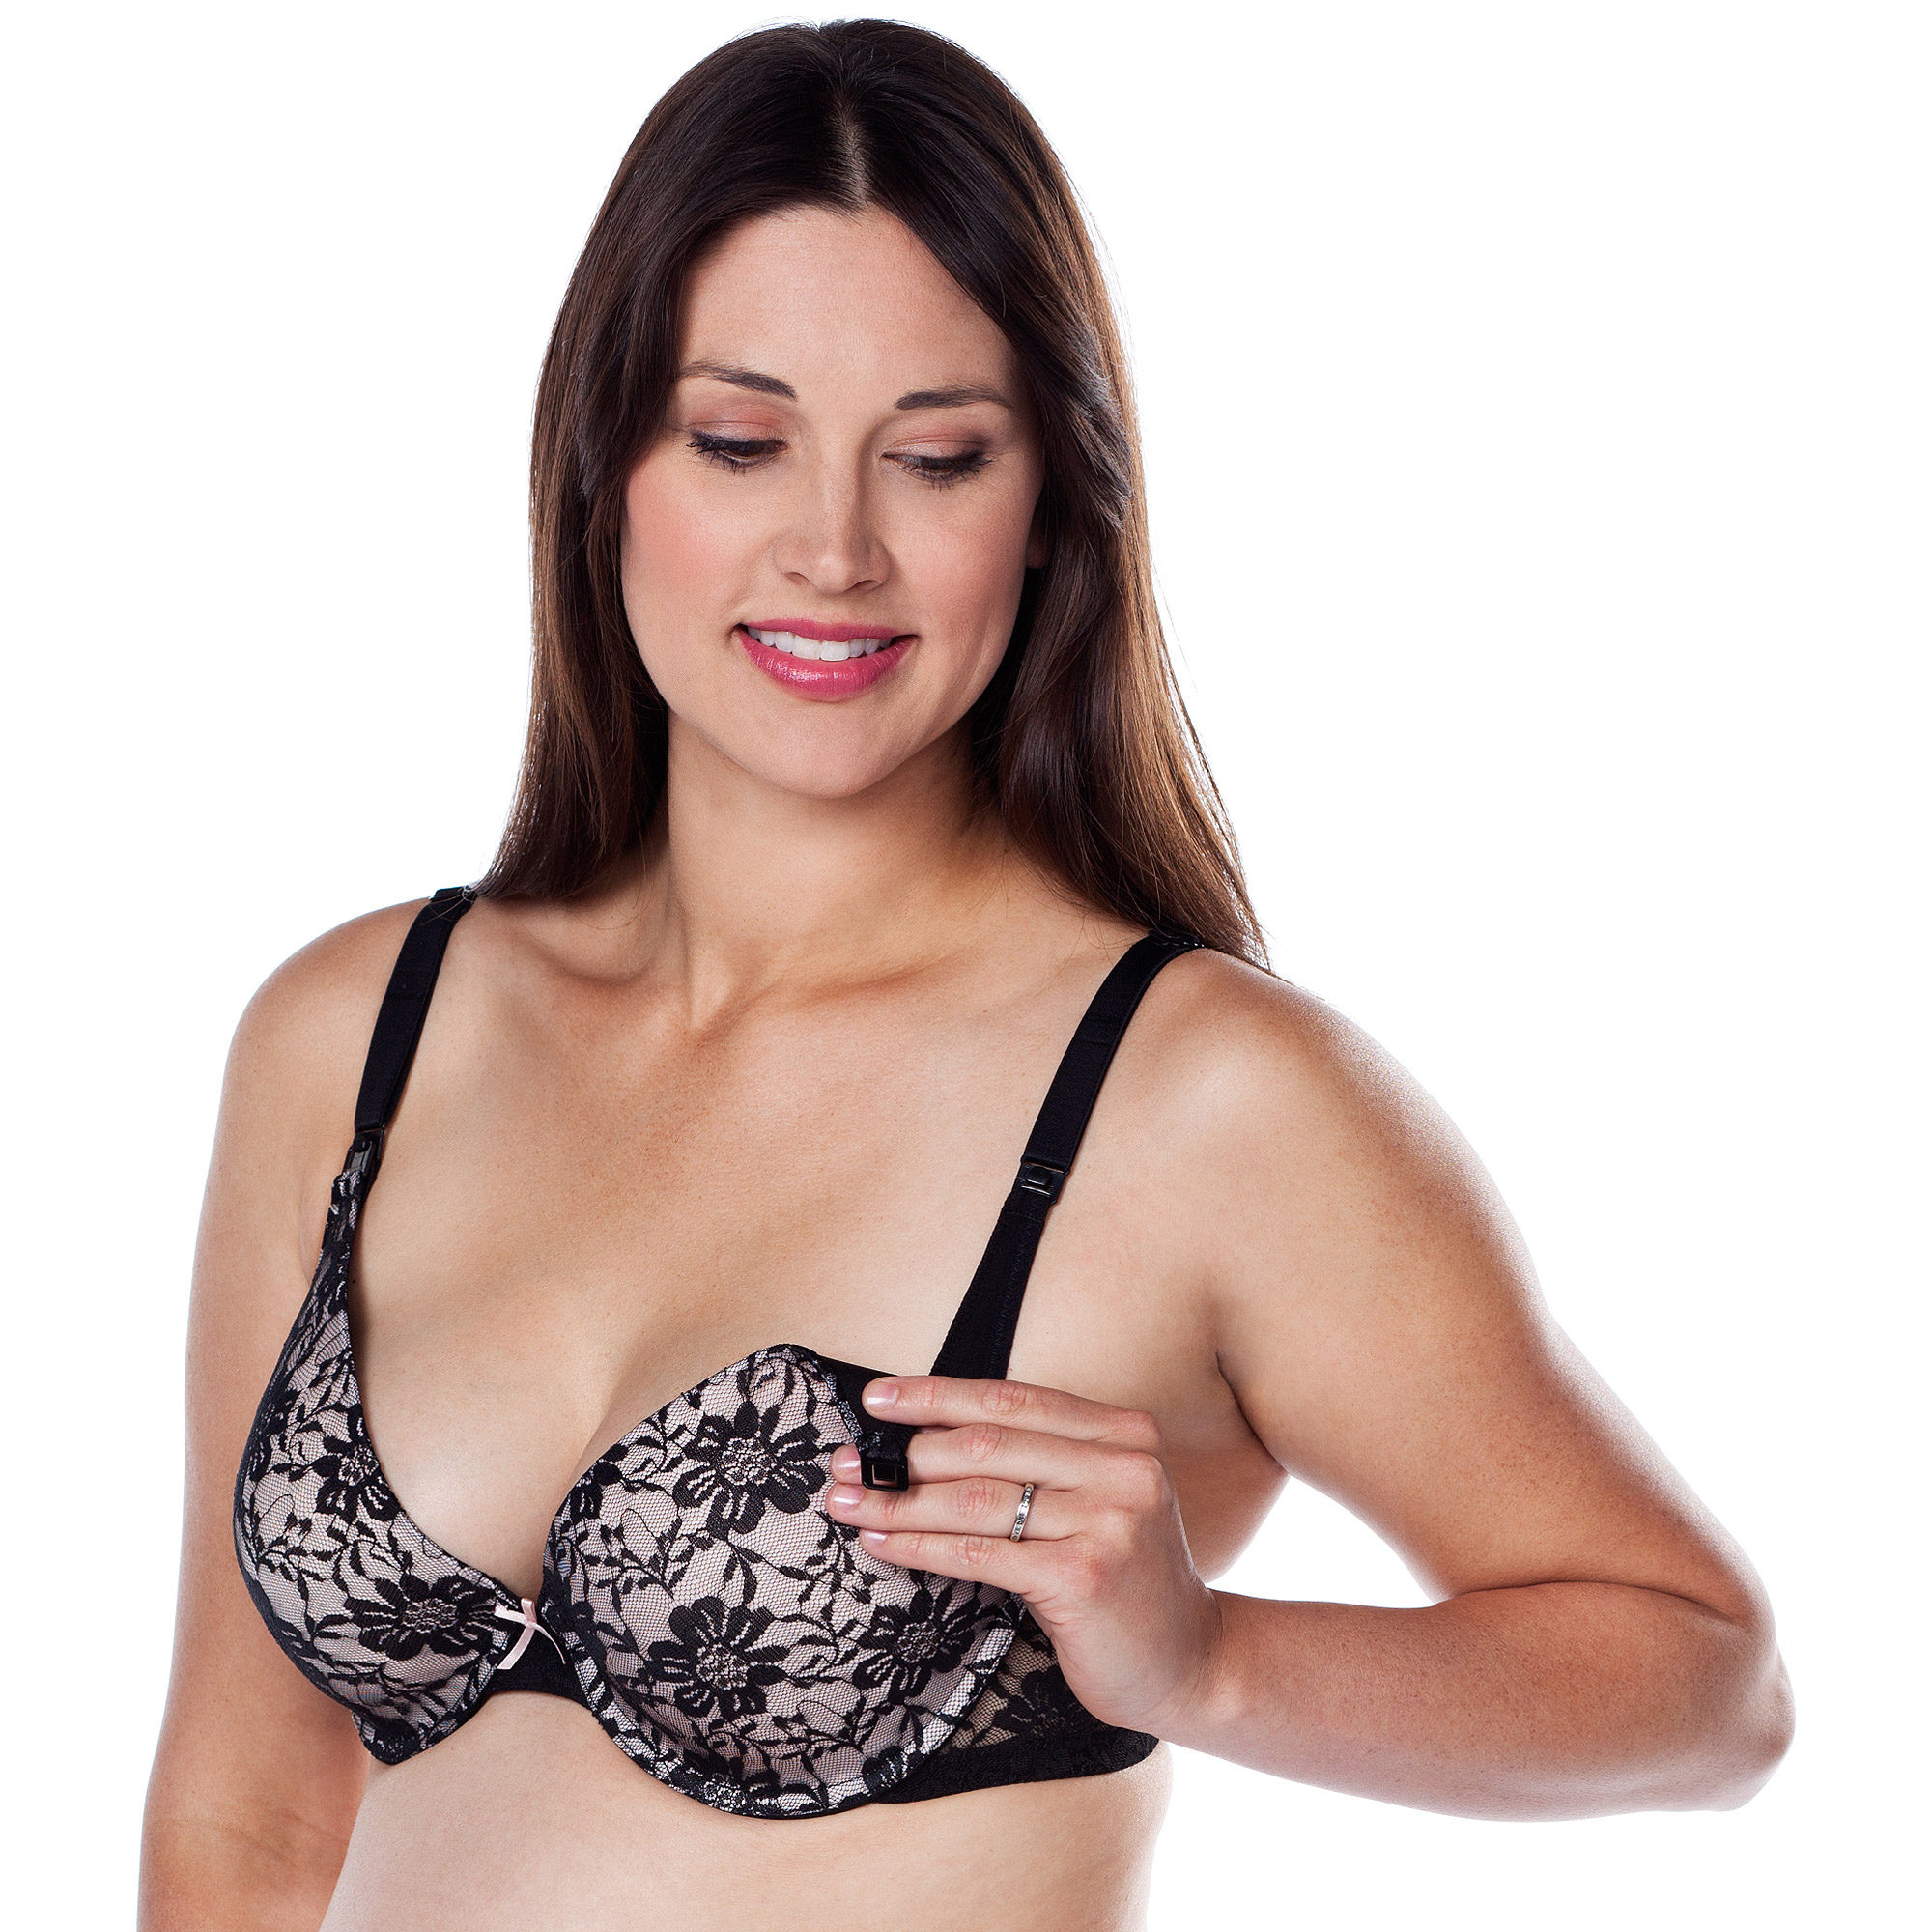 Loving Moments by Leading Lady Underwire Nursing Bra with Lace Molded Cups